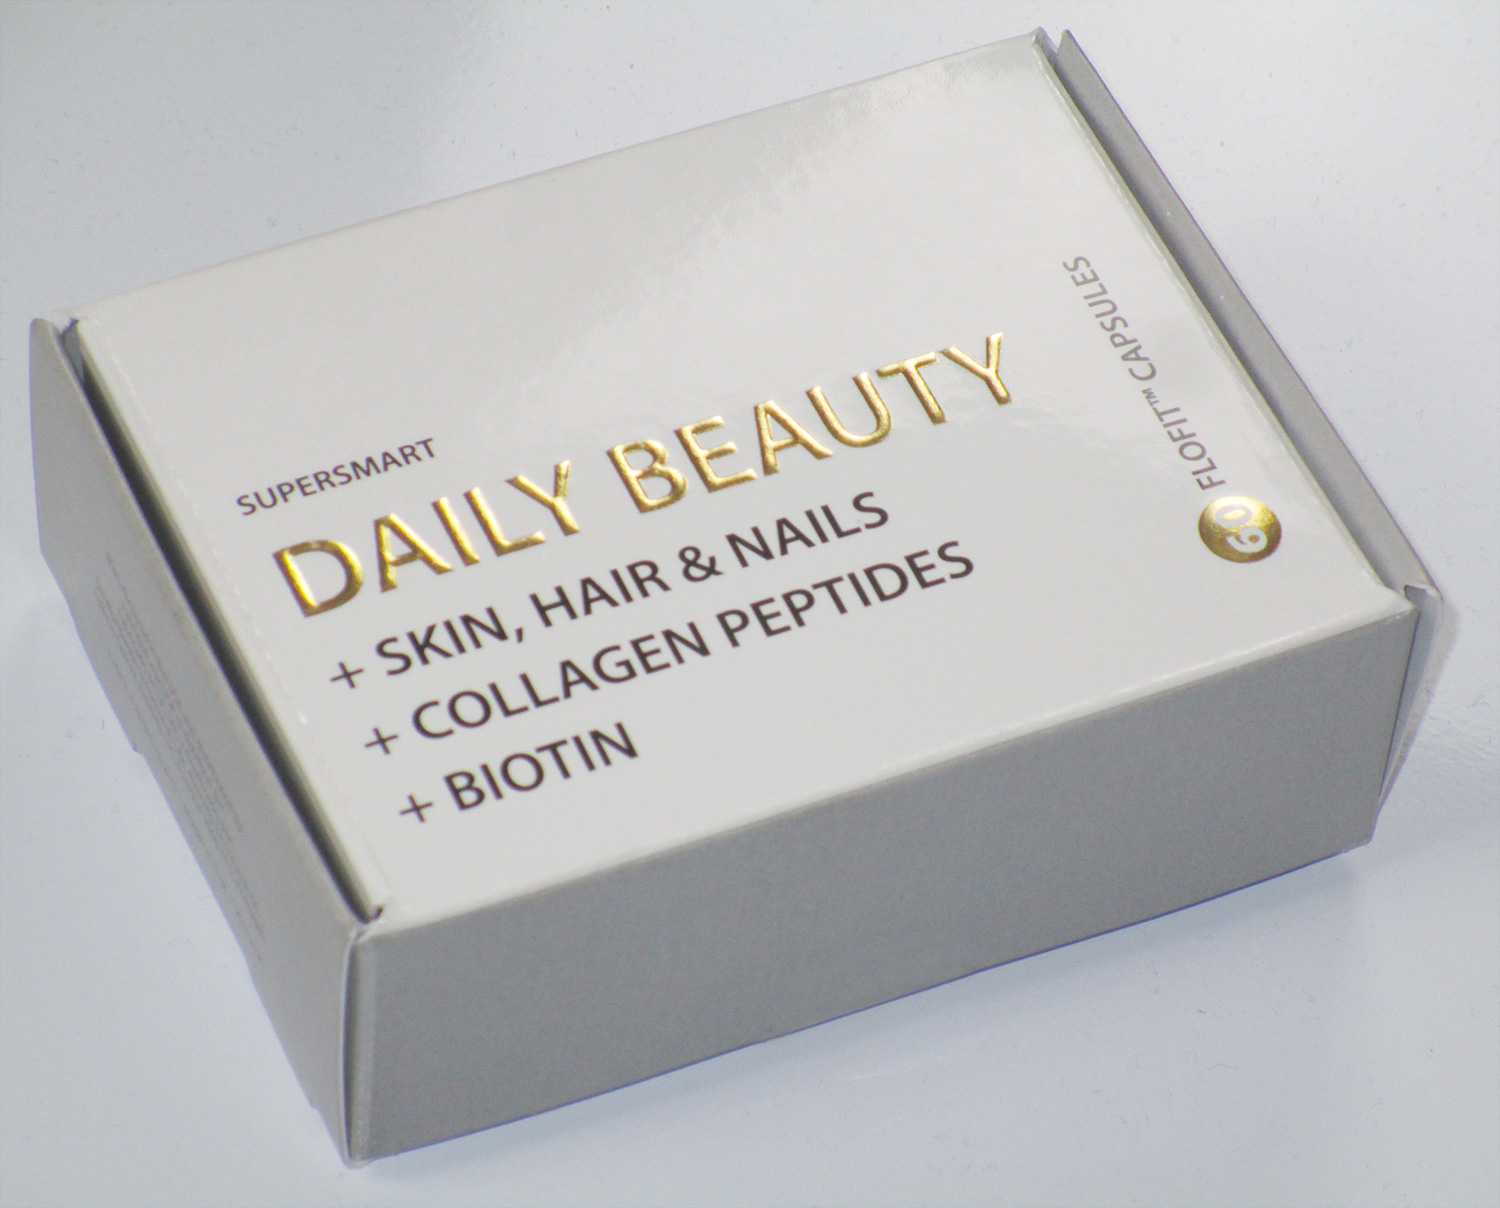 Suplemento antiarrugas Daily Beauty